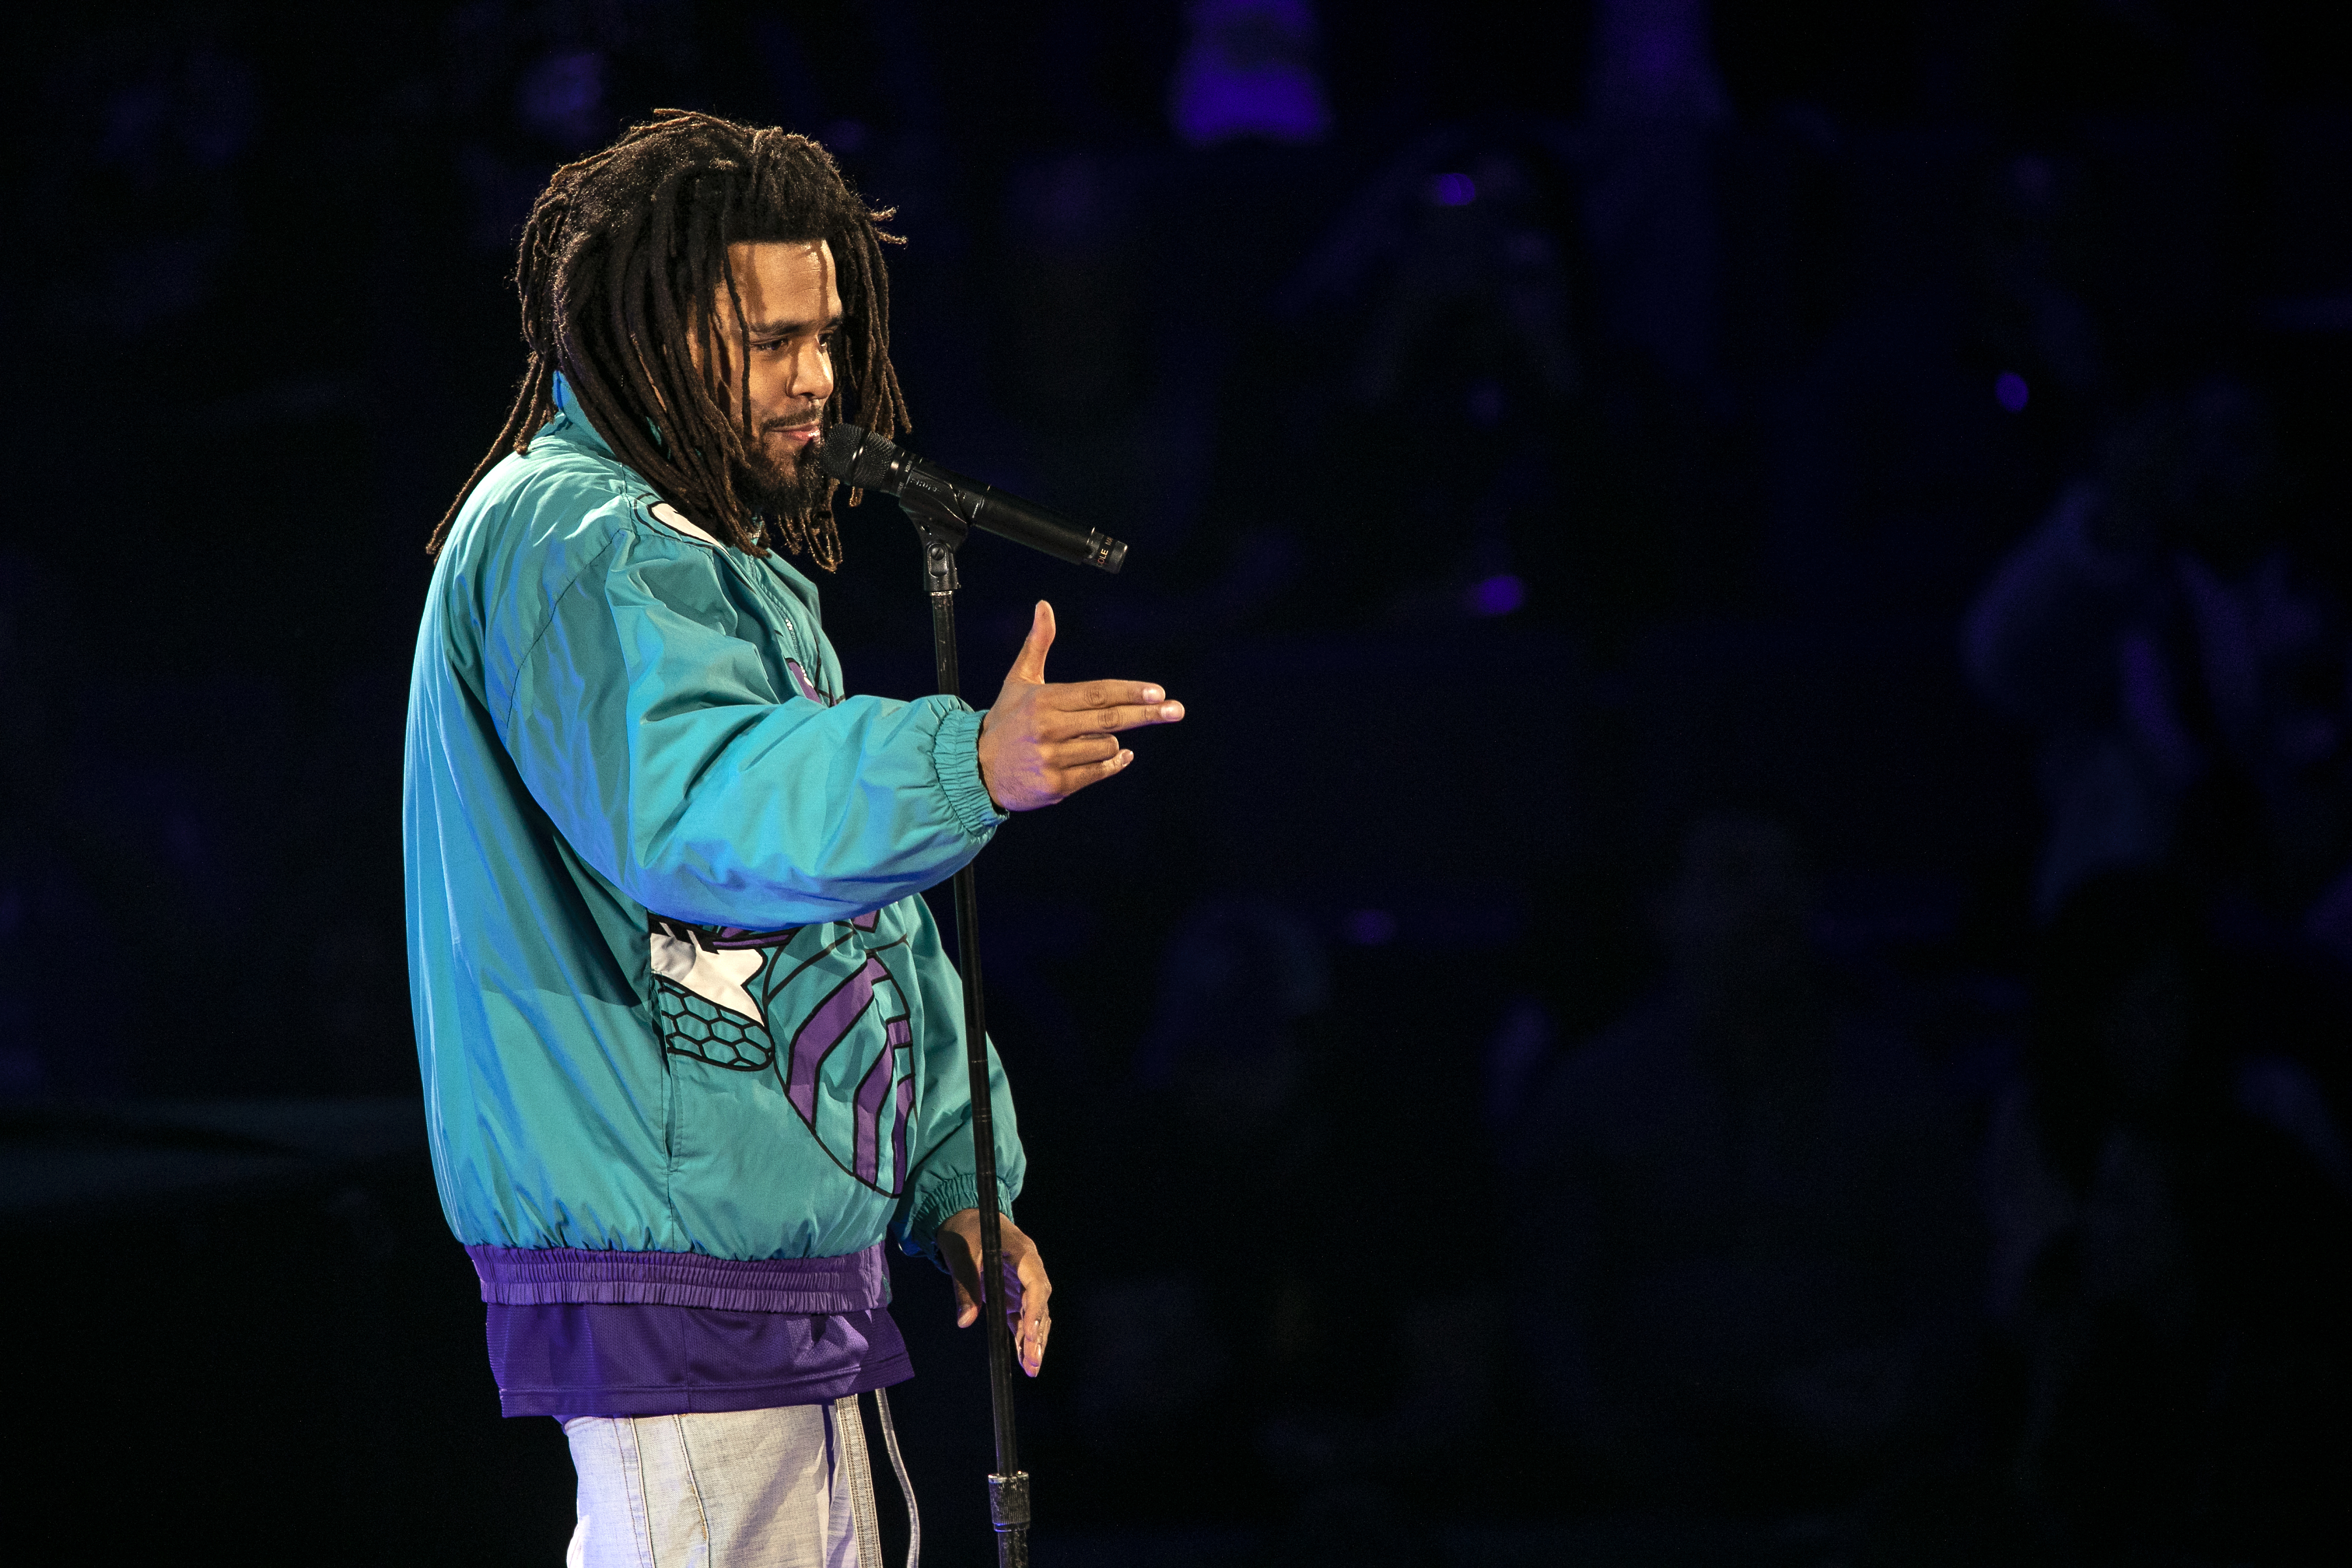 J. Cole Performs at the 2019 NBA All-Star Game